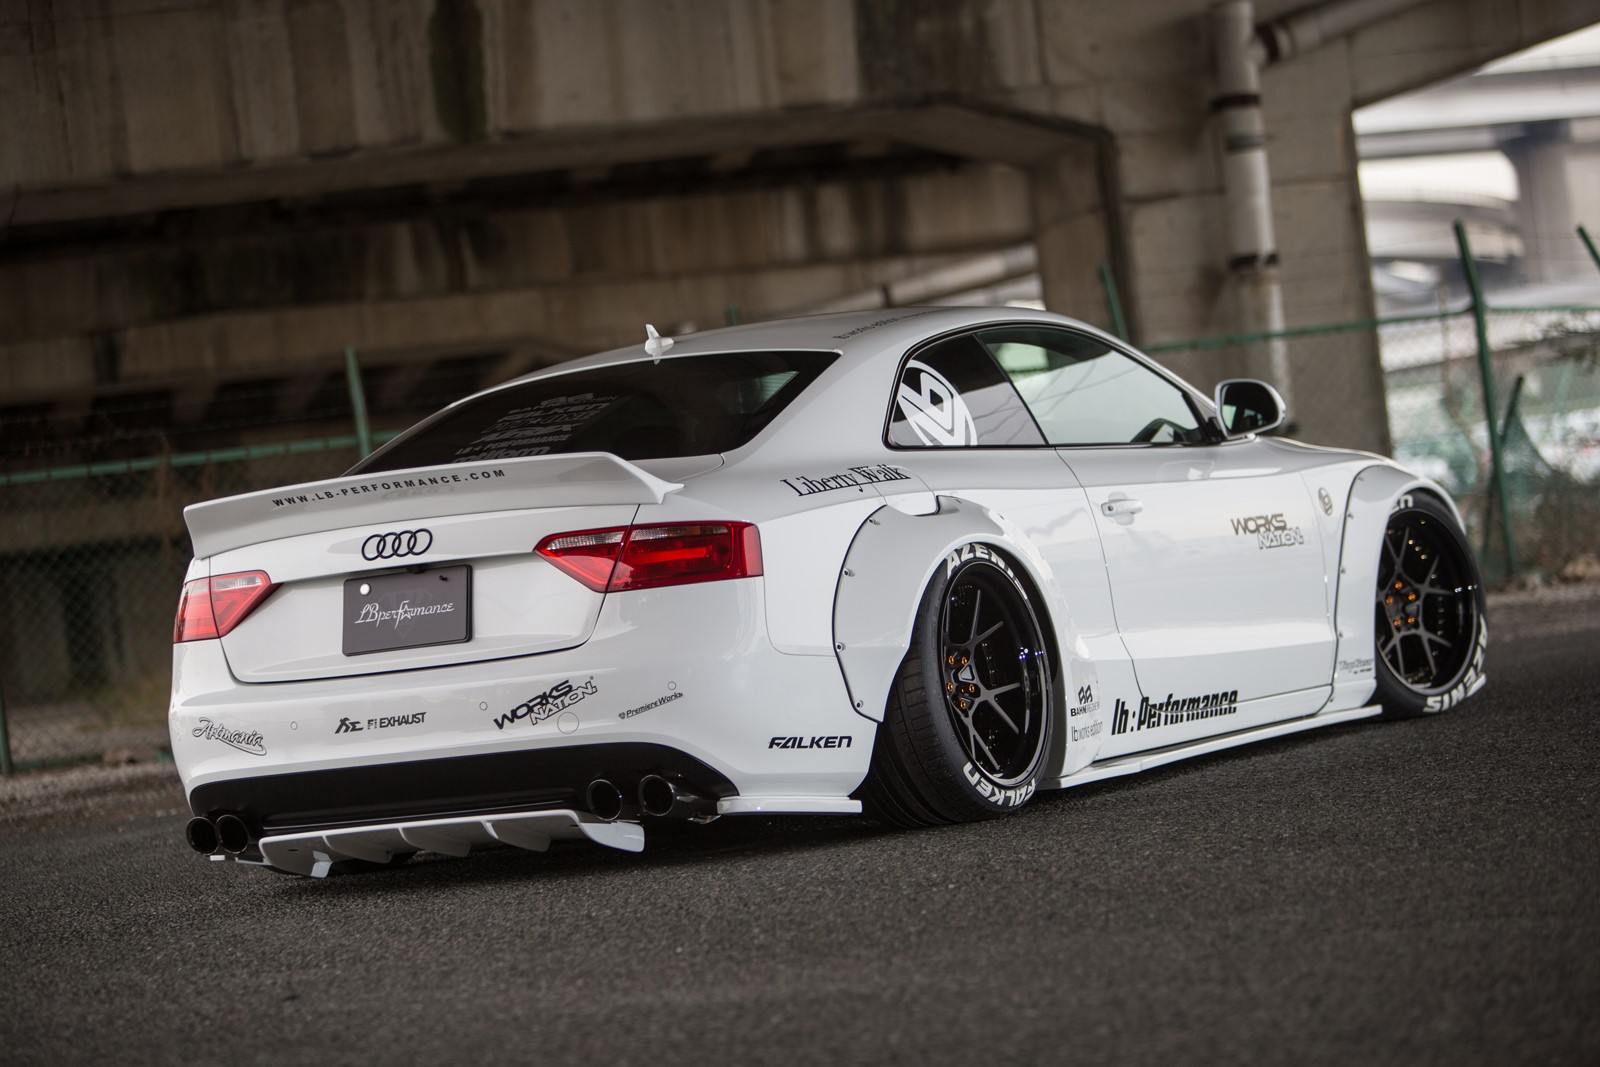 Audi A5 with a Liberty Walk body kit - Vehiclejar Blog